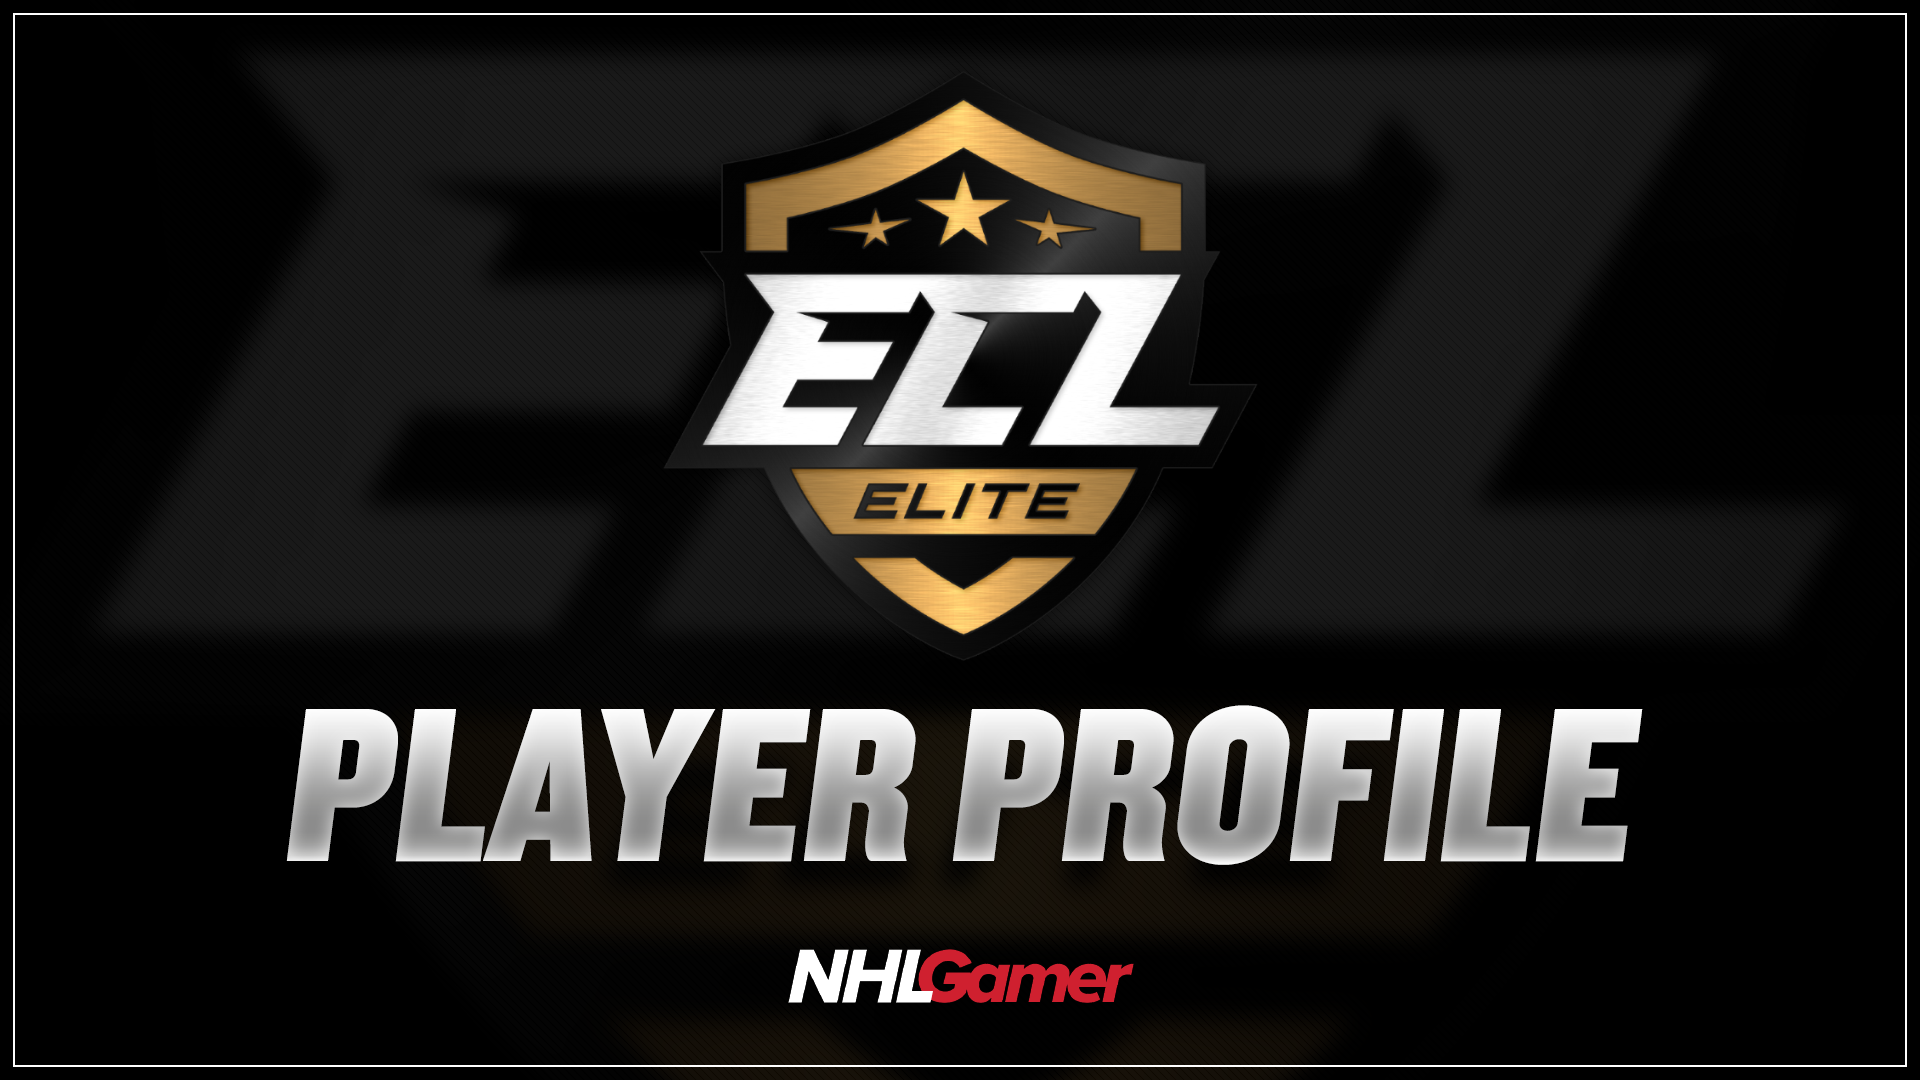 ECL%20Elite%20Player%20Profile.png